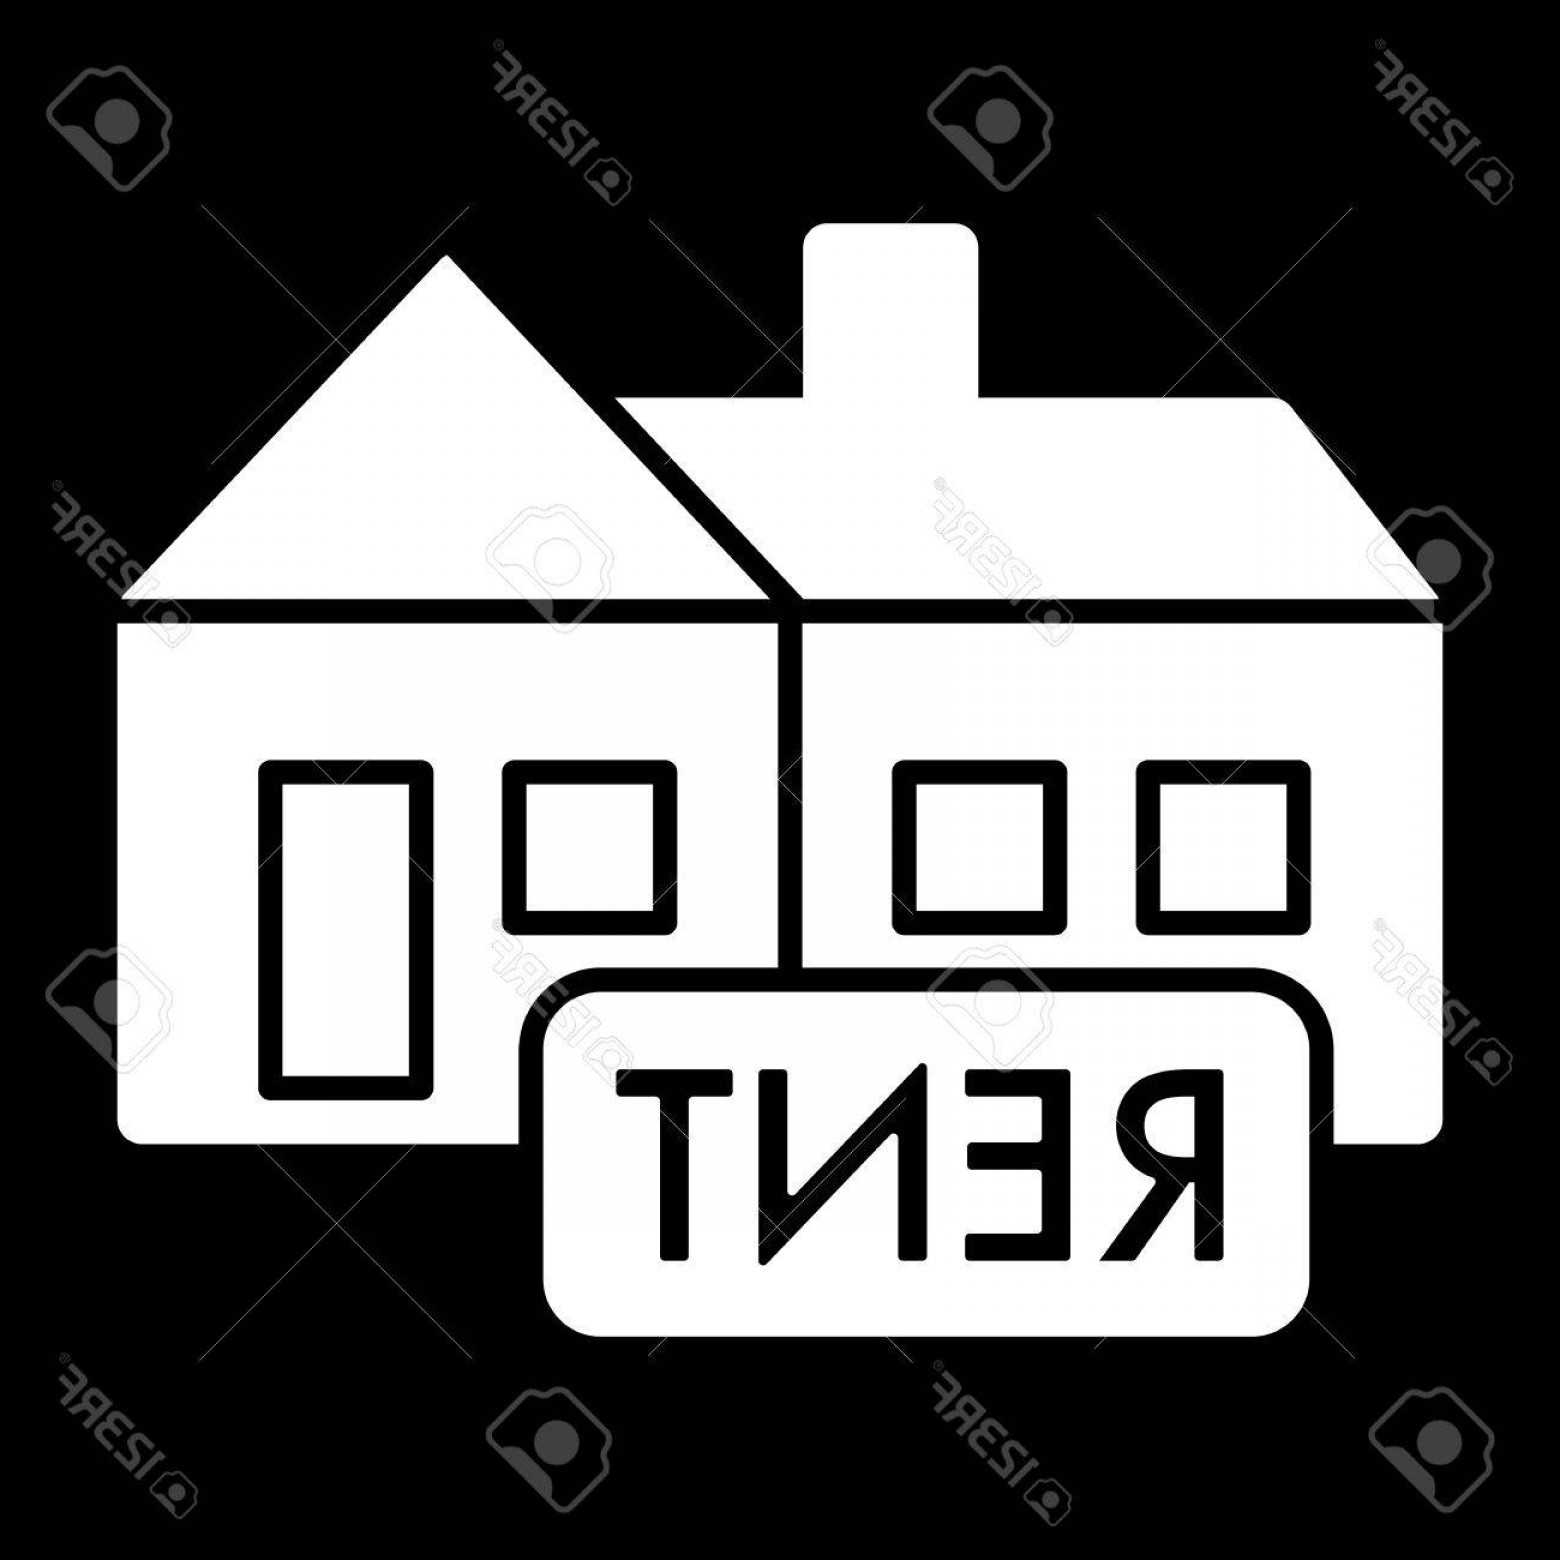 Nameplate Vector Graphics: Photostock Vector Rent Symbol Simple Vector Icon Black And White Illustration Of Rent Nameplate Solid Linear Real Esta